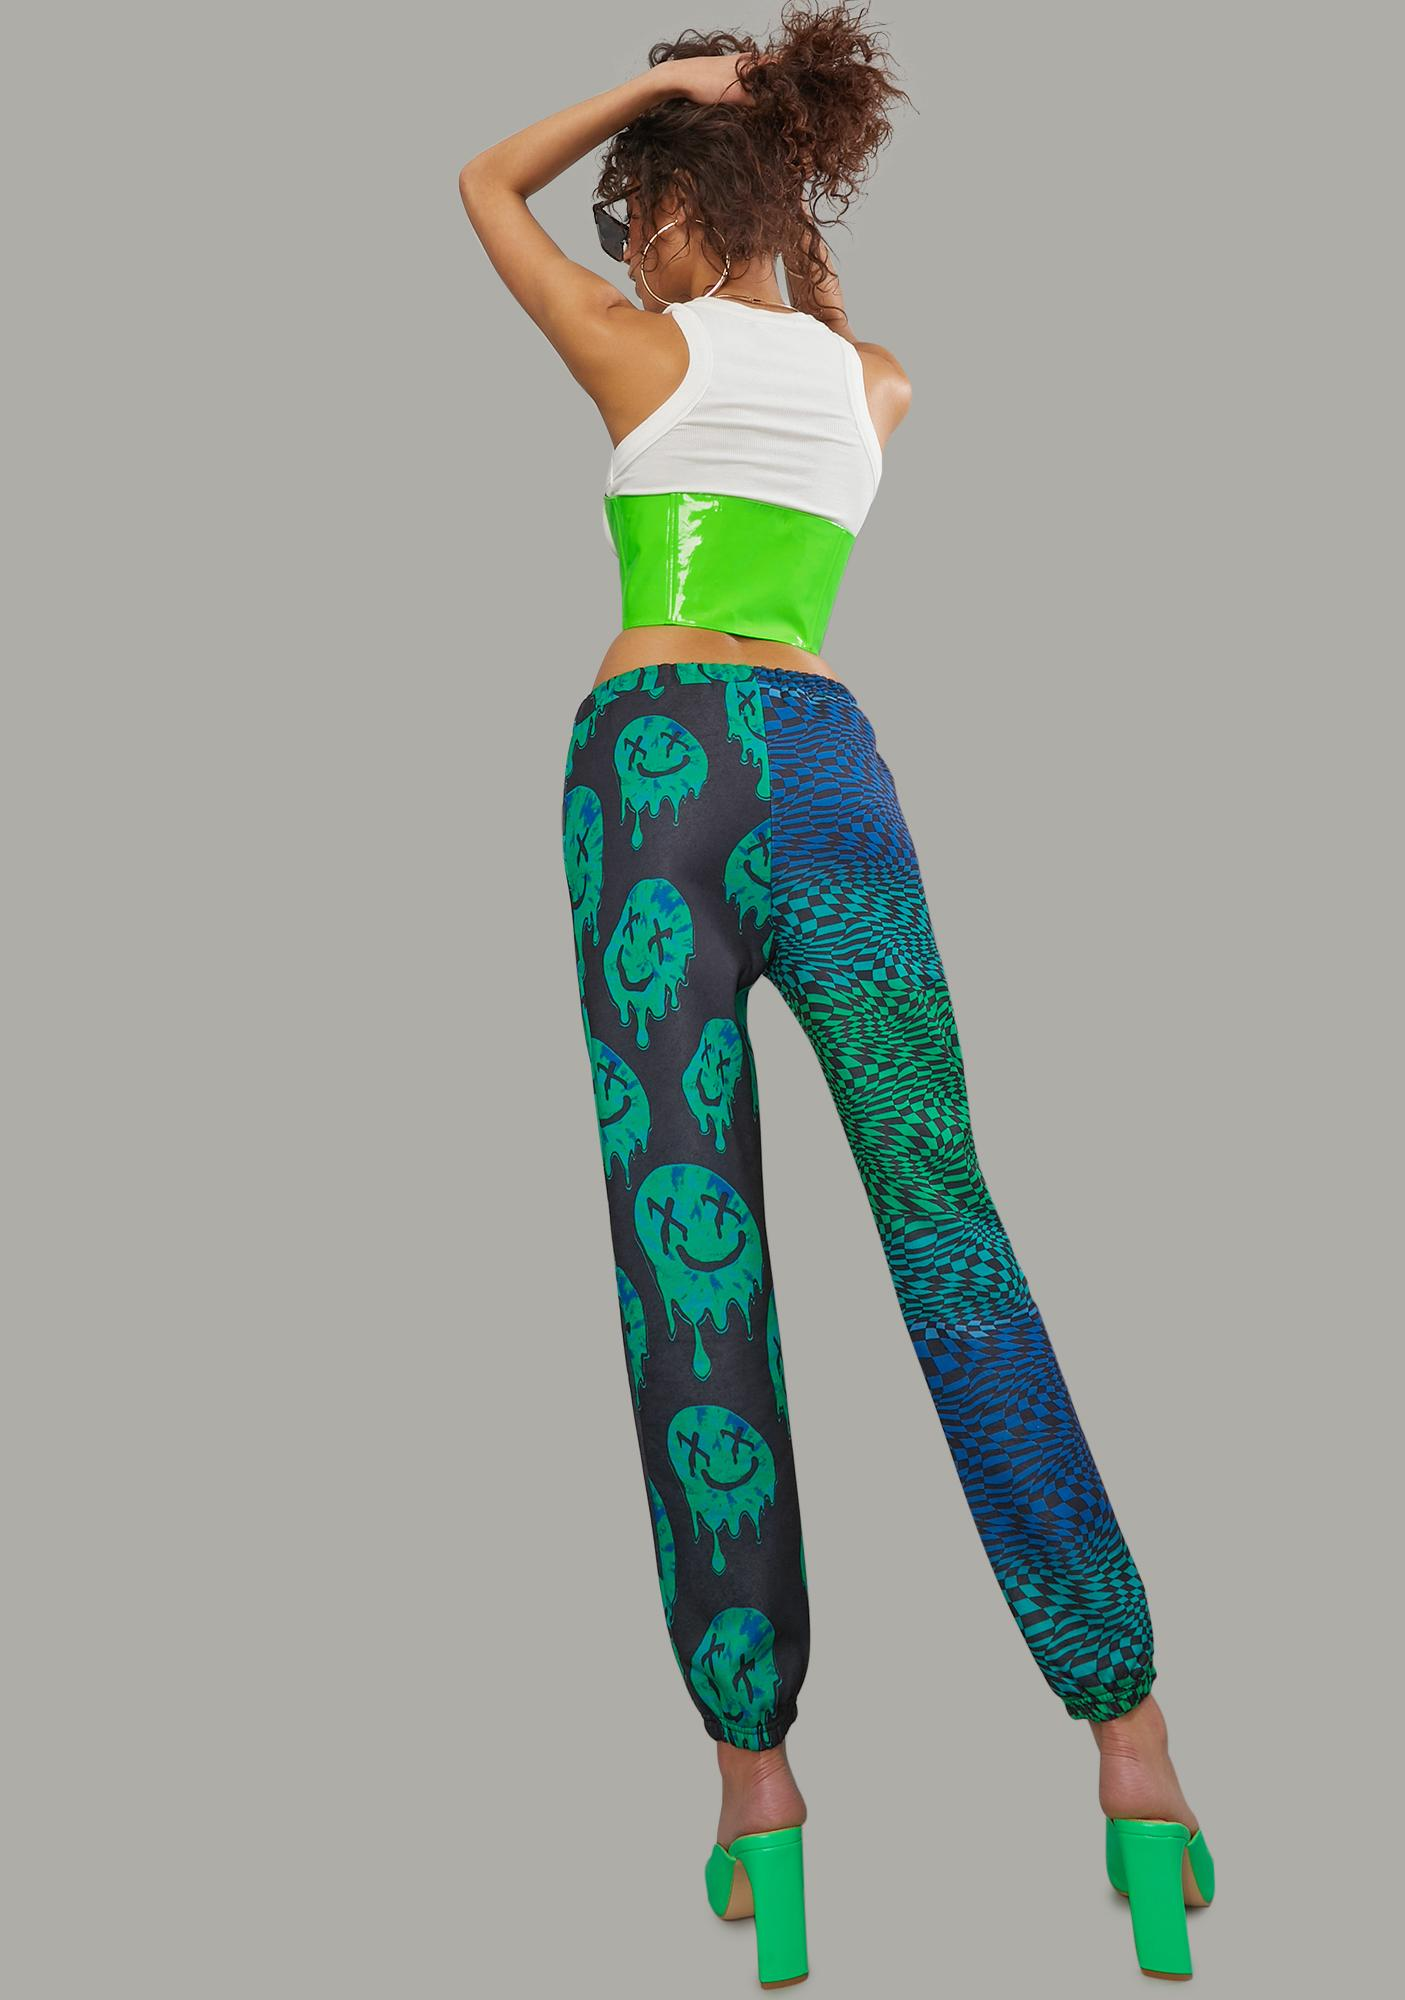 Poster Grl Slime Takeover Smiley Joggers